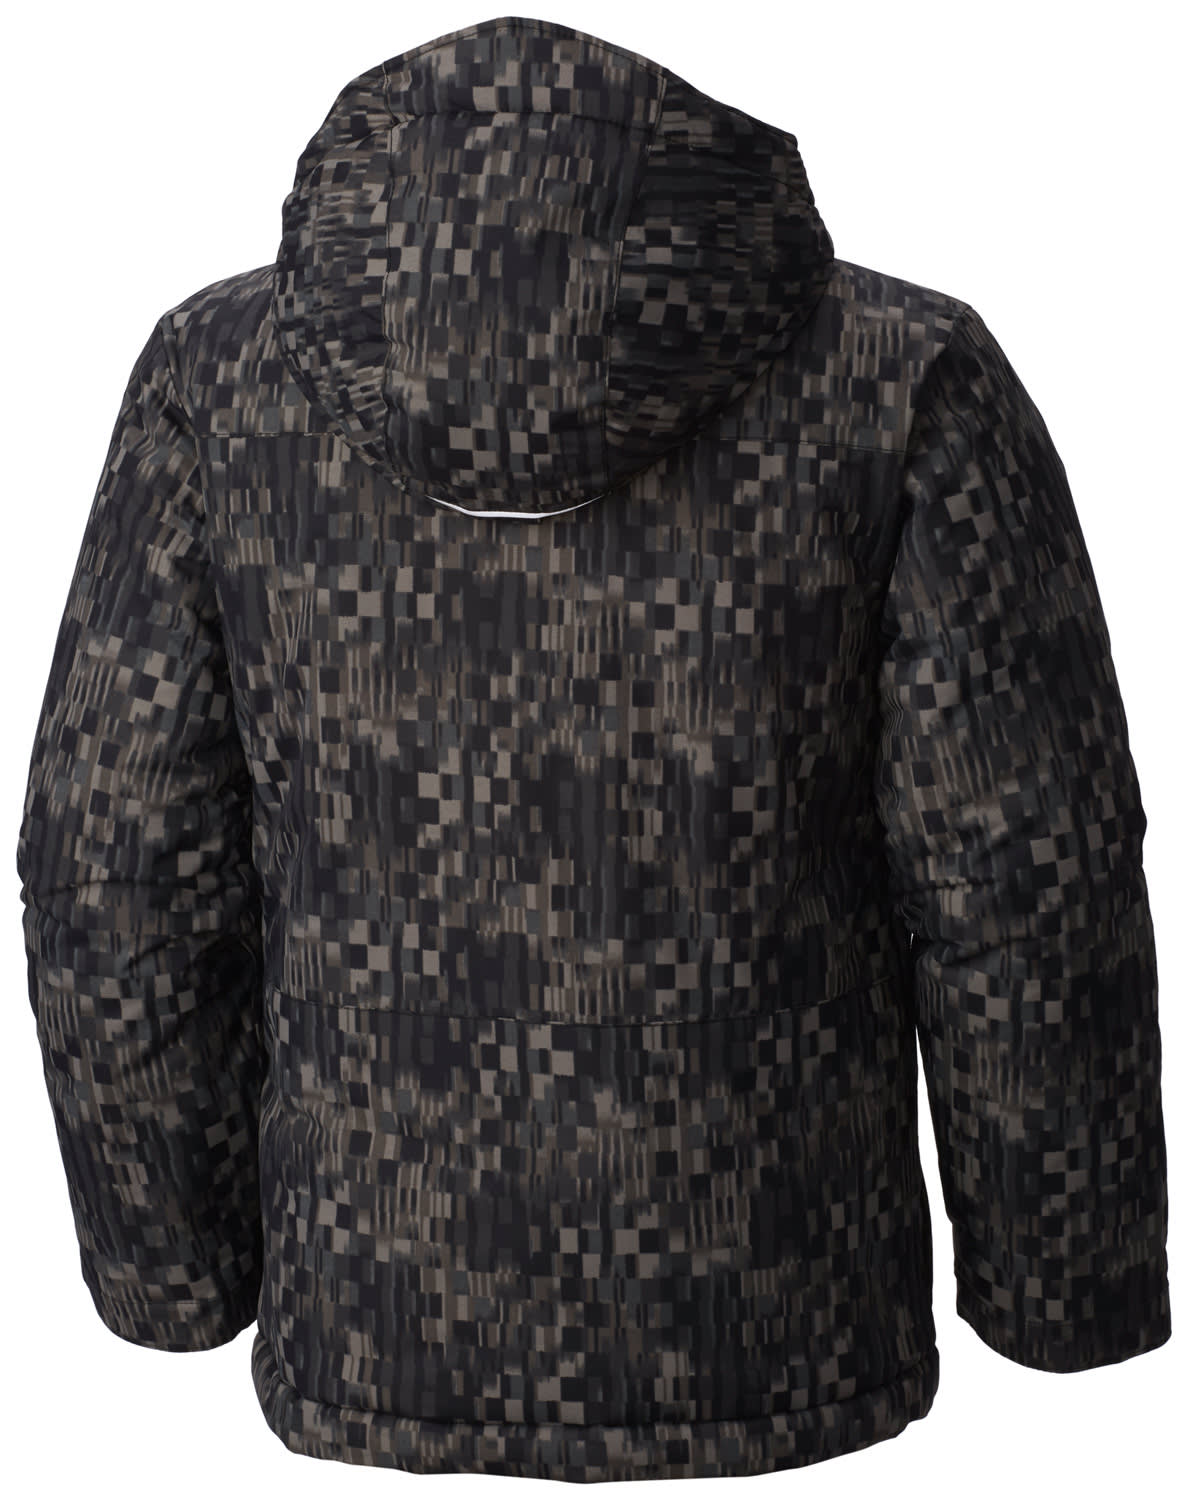 On Sale + Clothing () + Coats & Outerwear () Fleece and Softshell Jackets () Columbia () Columbia Kids () Notify me about new styles. Notify Me. Trying helped them put little silver dots on the inside of jackets, made shirts that repel bugs, and led to a rechargeable heating system in boots. If you think trying won't.